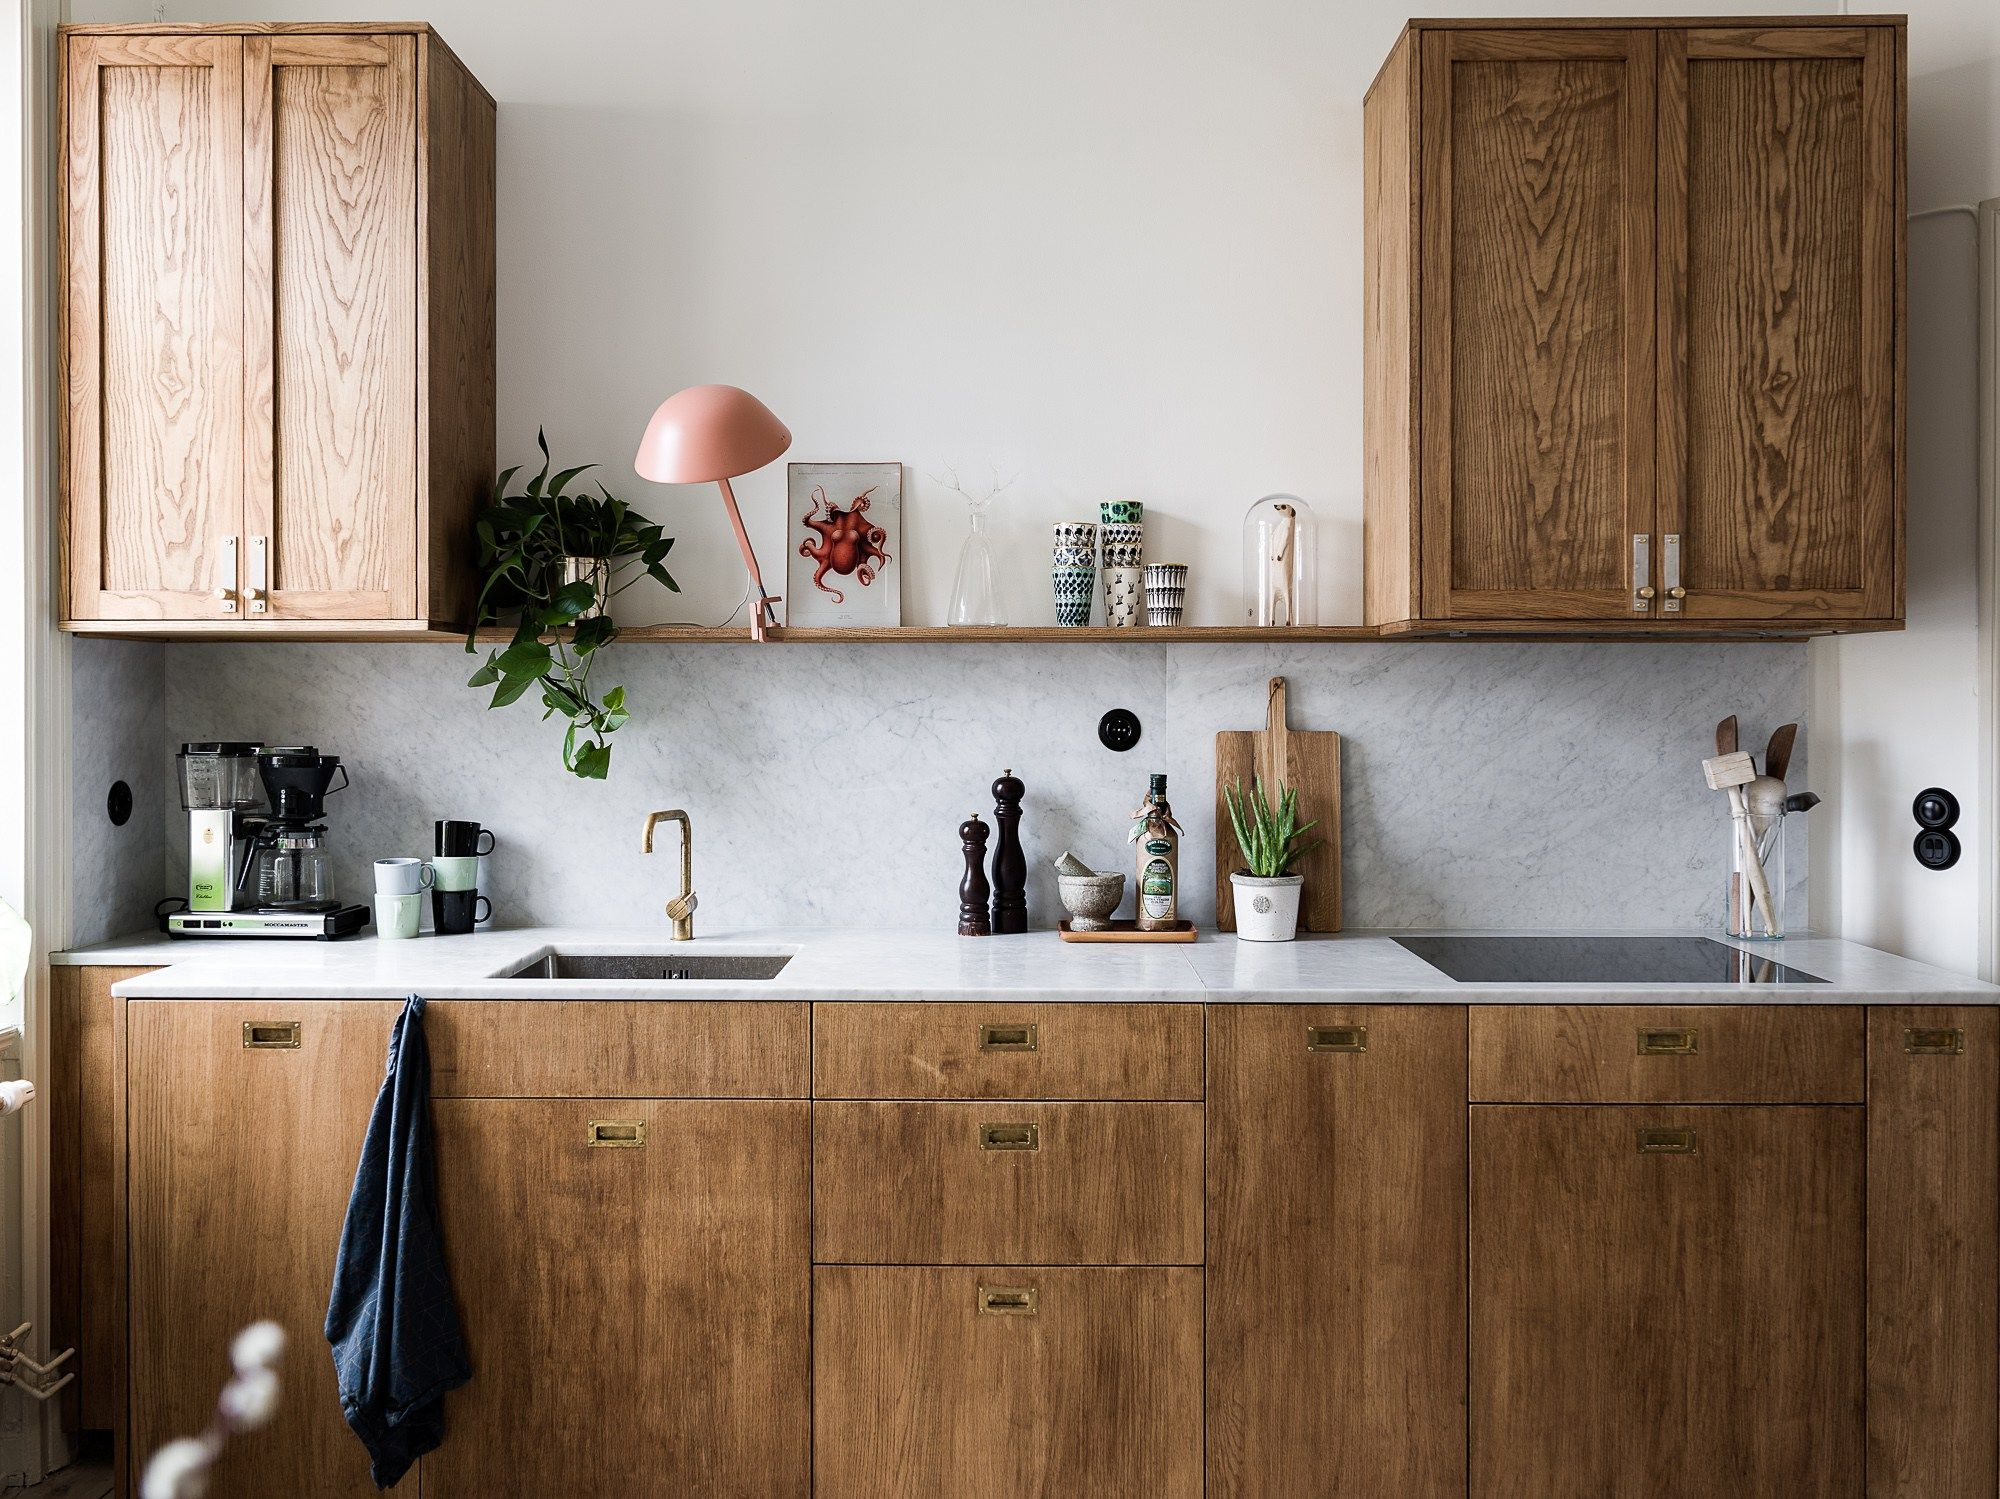 Stylish And Spacious Living Area Coco Lapine Design Kitchen Marble Kitchen Interior Kitchen Trends